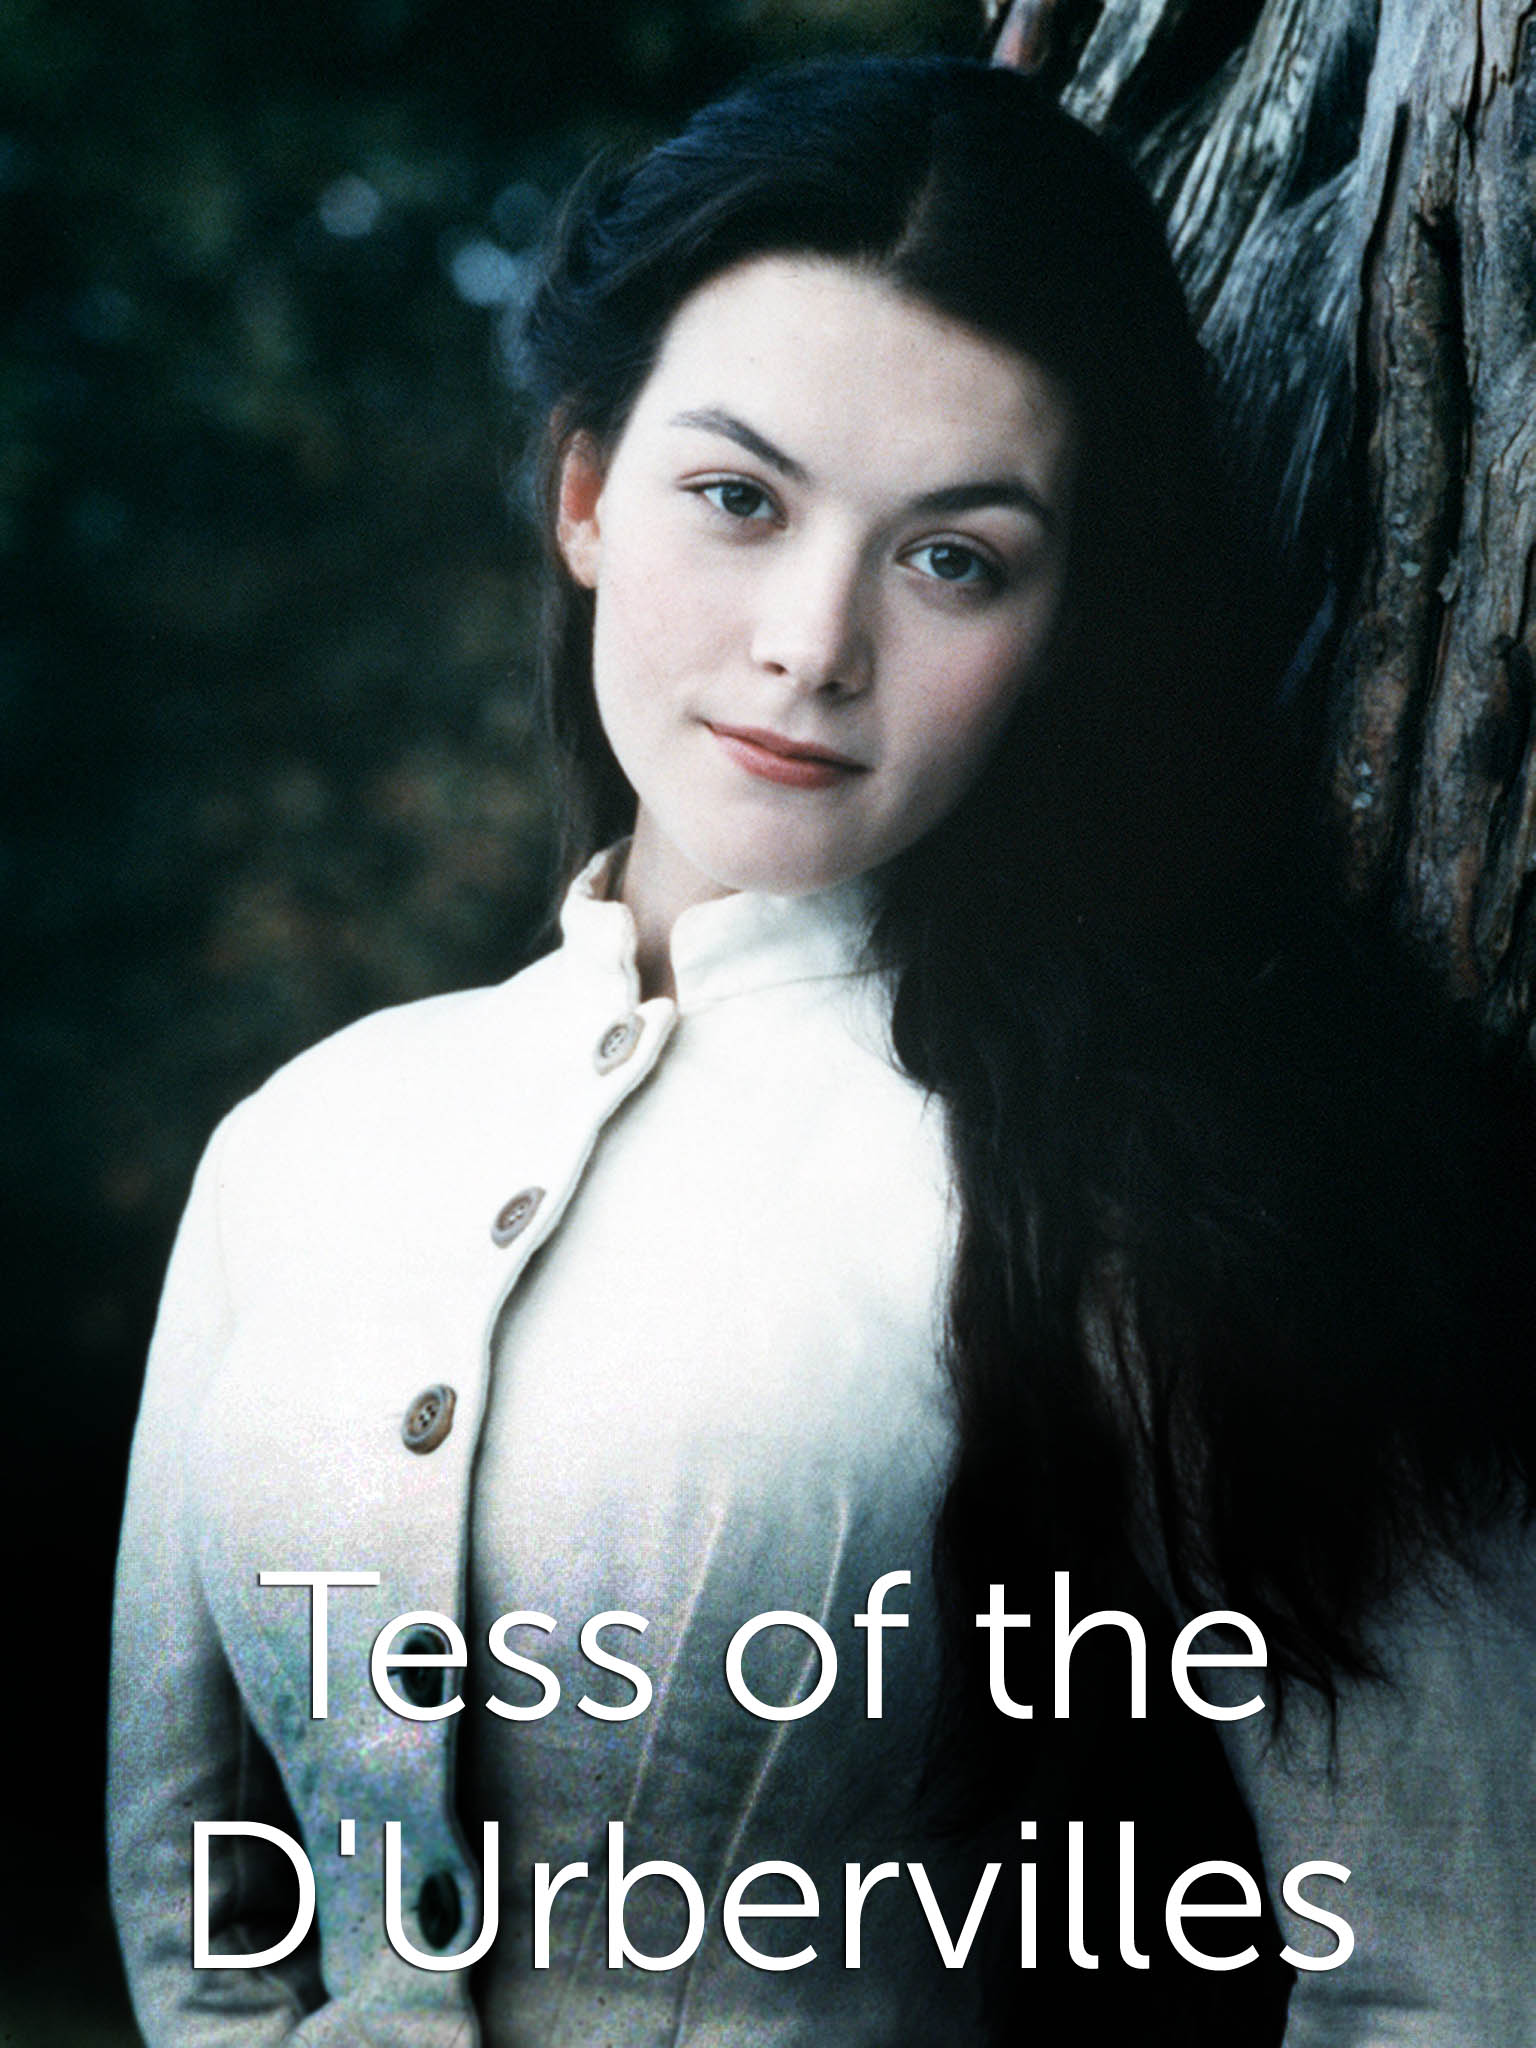 tess of the d urbervilles Free tess of the d'urbervilles papers, essays, and research papers.